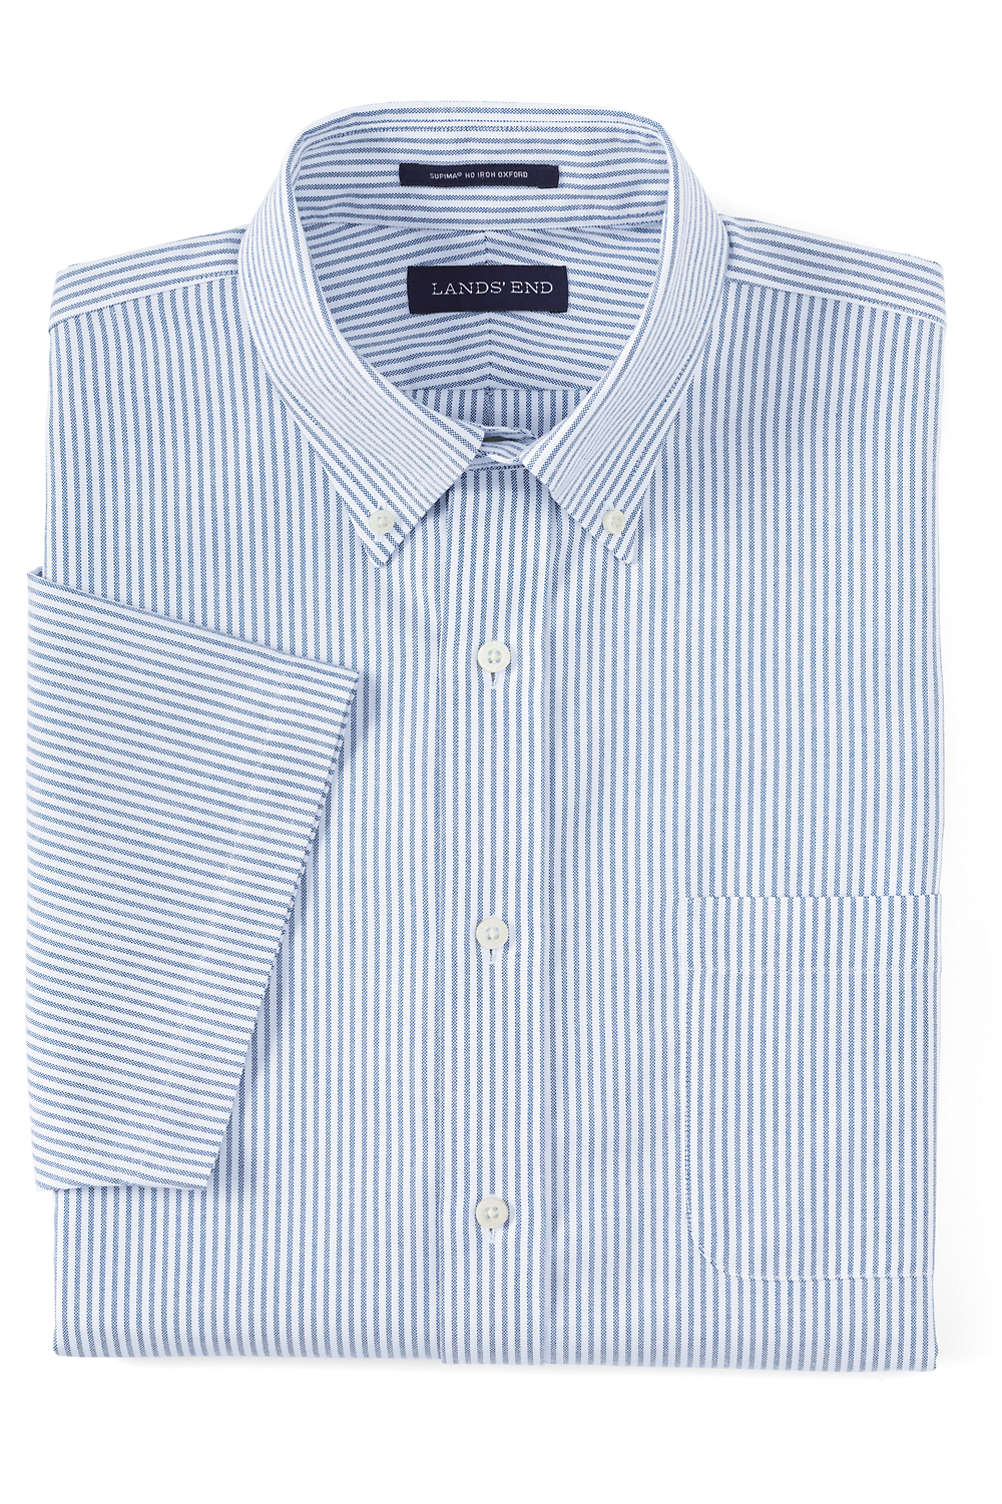 Mens Short Sleeve Supima No Iron Oxford Dress Shirt From Lands End